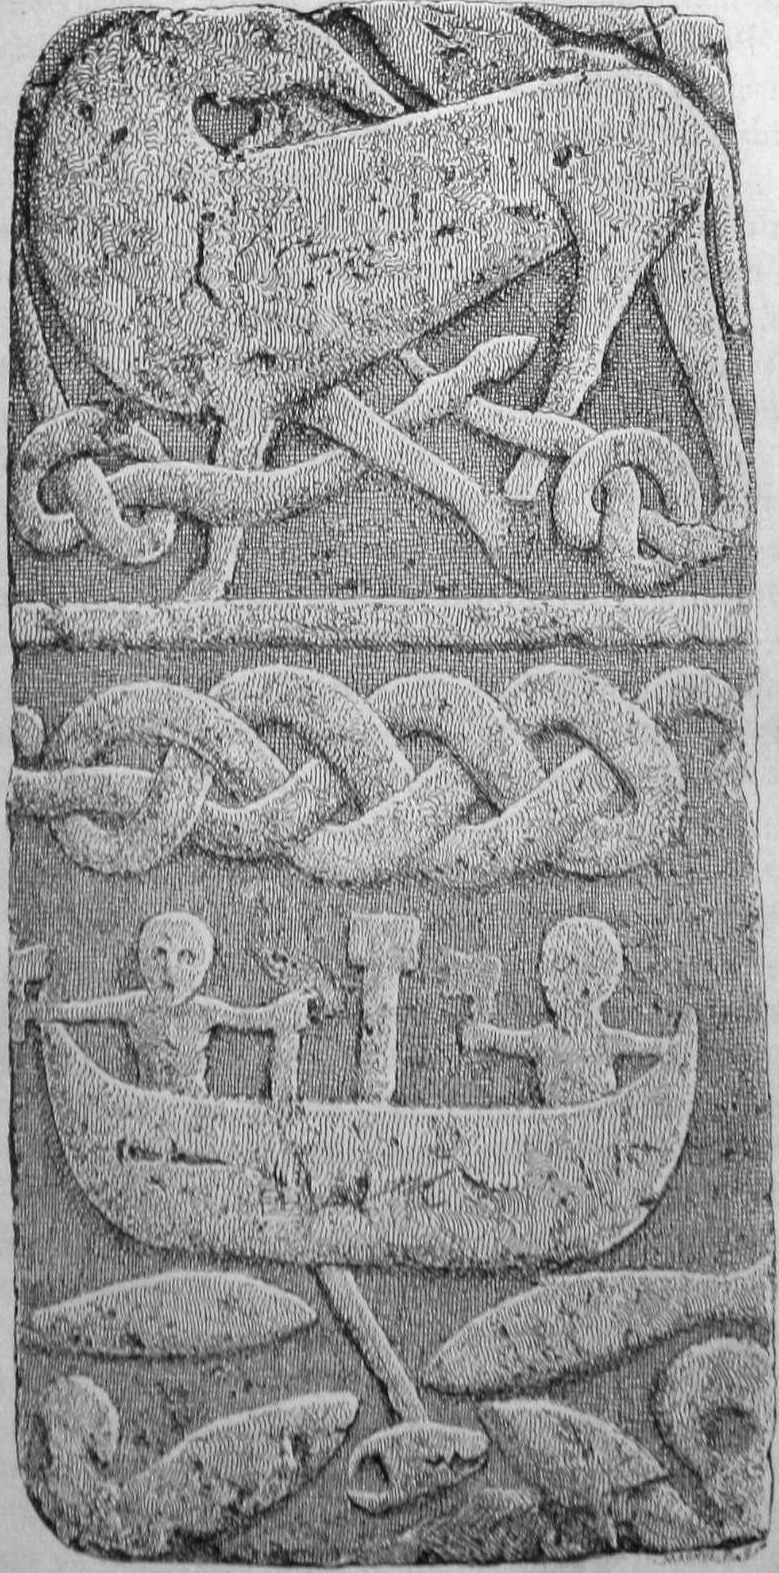 The Gosforth depiction, one of four stones depicting Thor's fishing trip